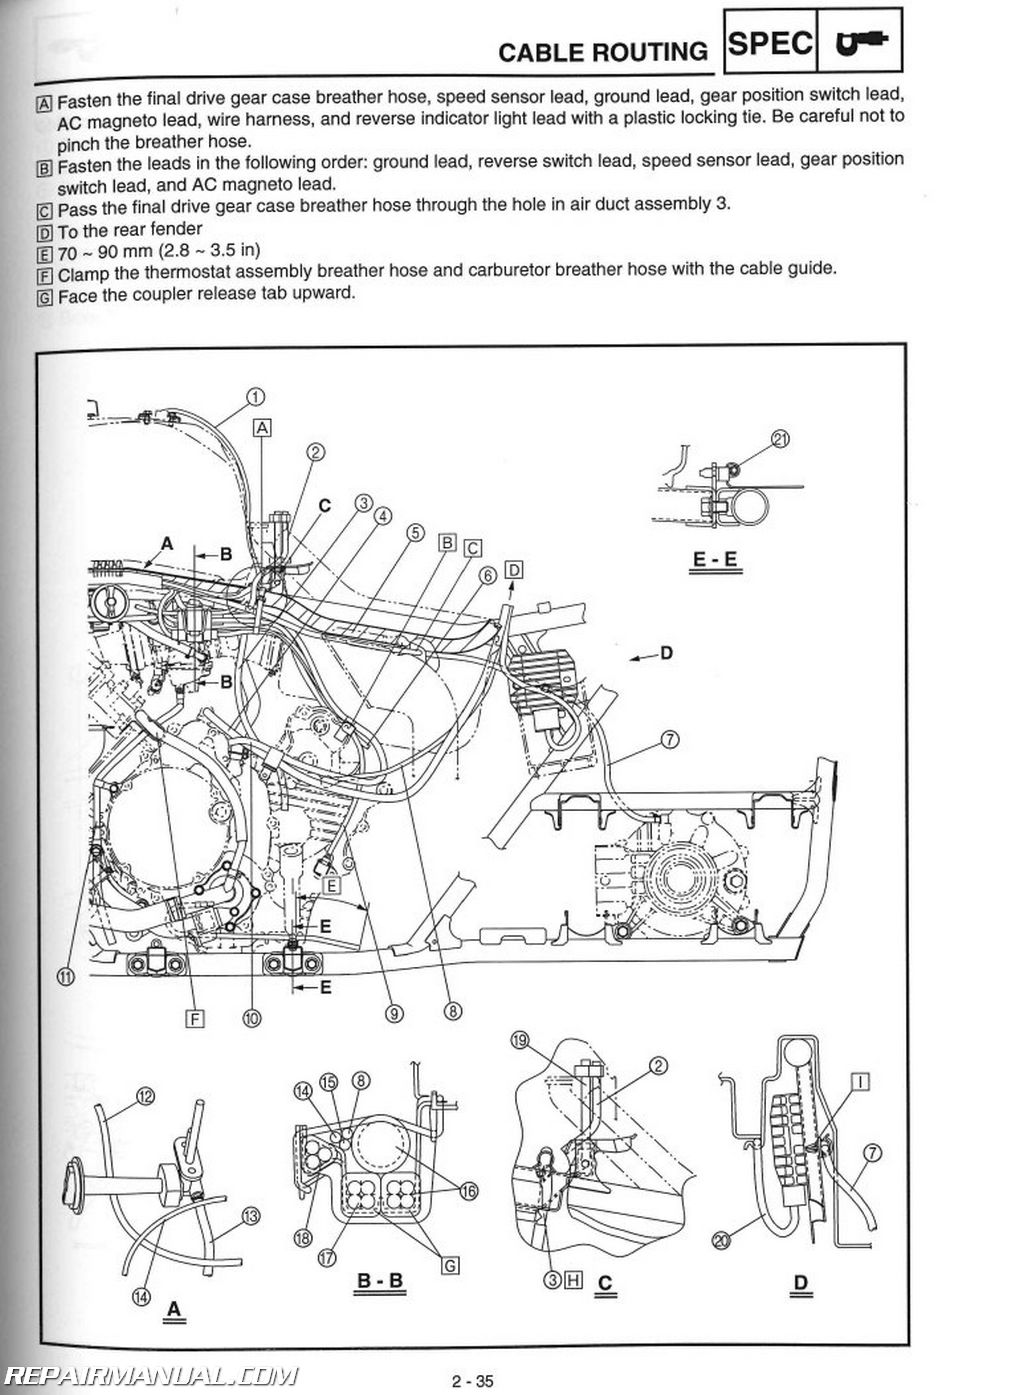 yamaha raptor 700 headlight wiring diagram human eye simple yfm660fa grizzly 660 atv service manual 2003 2008